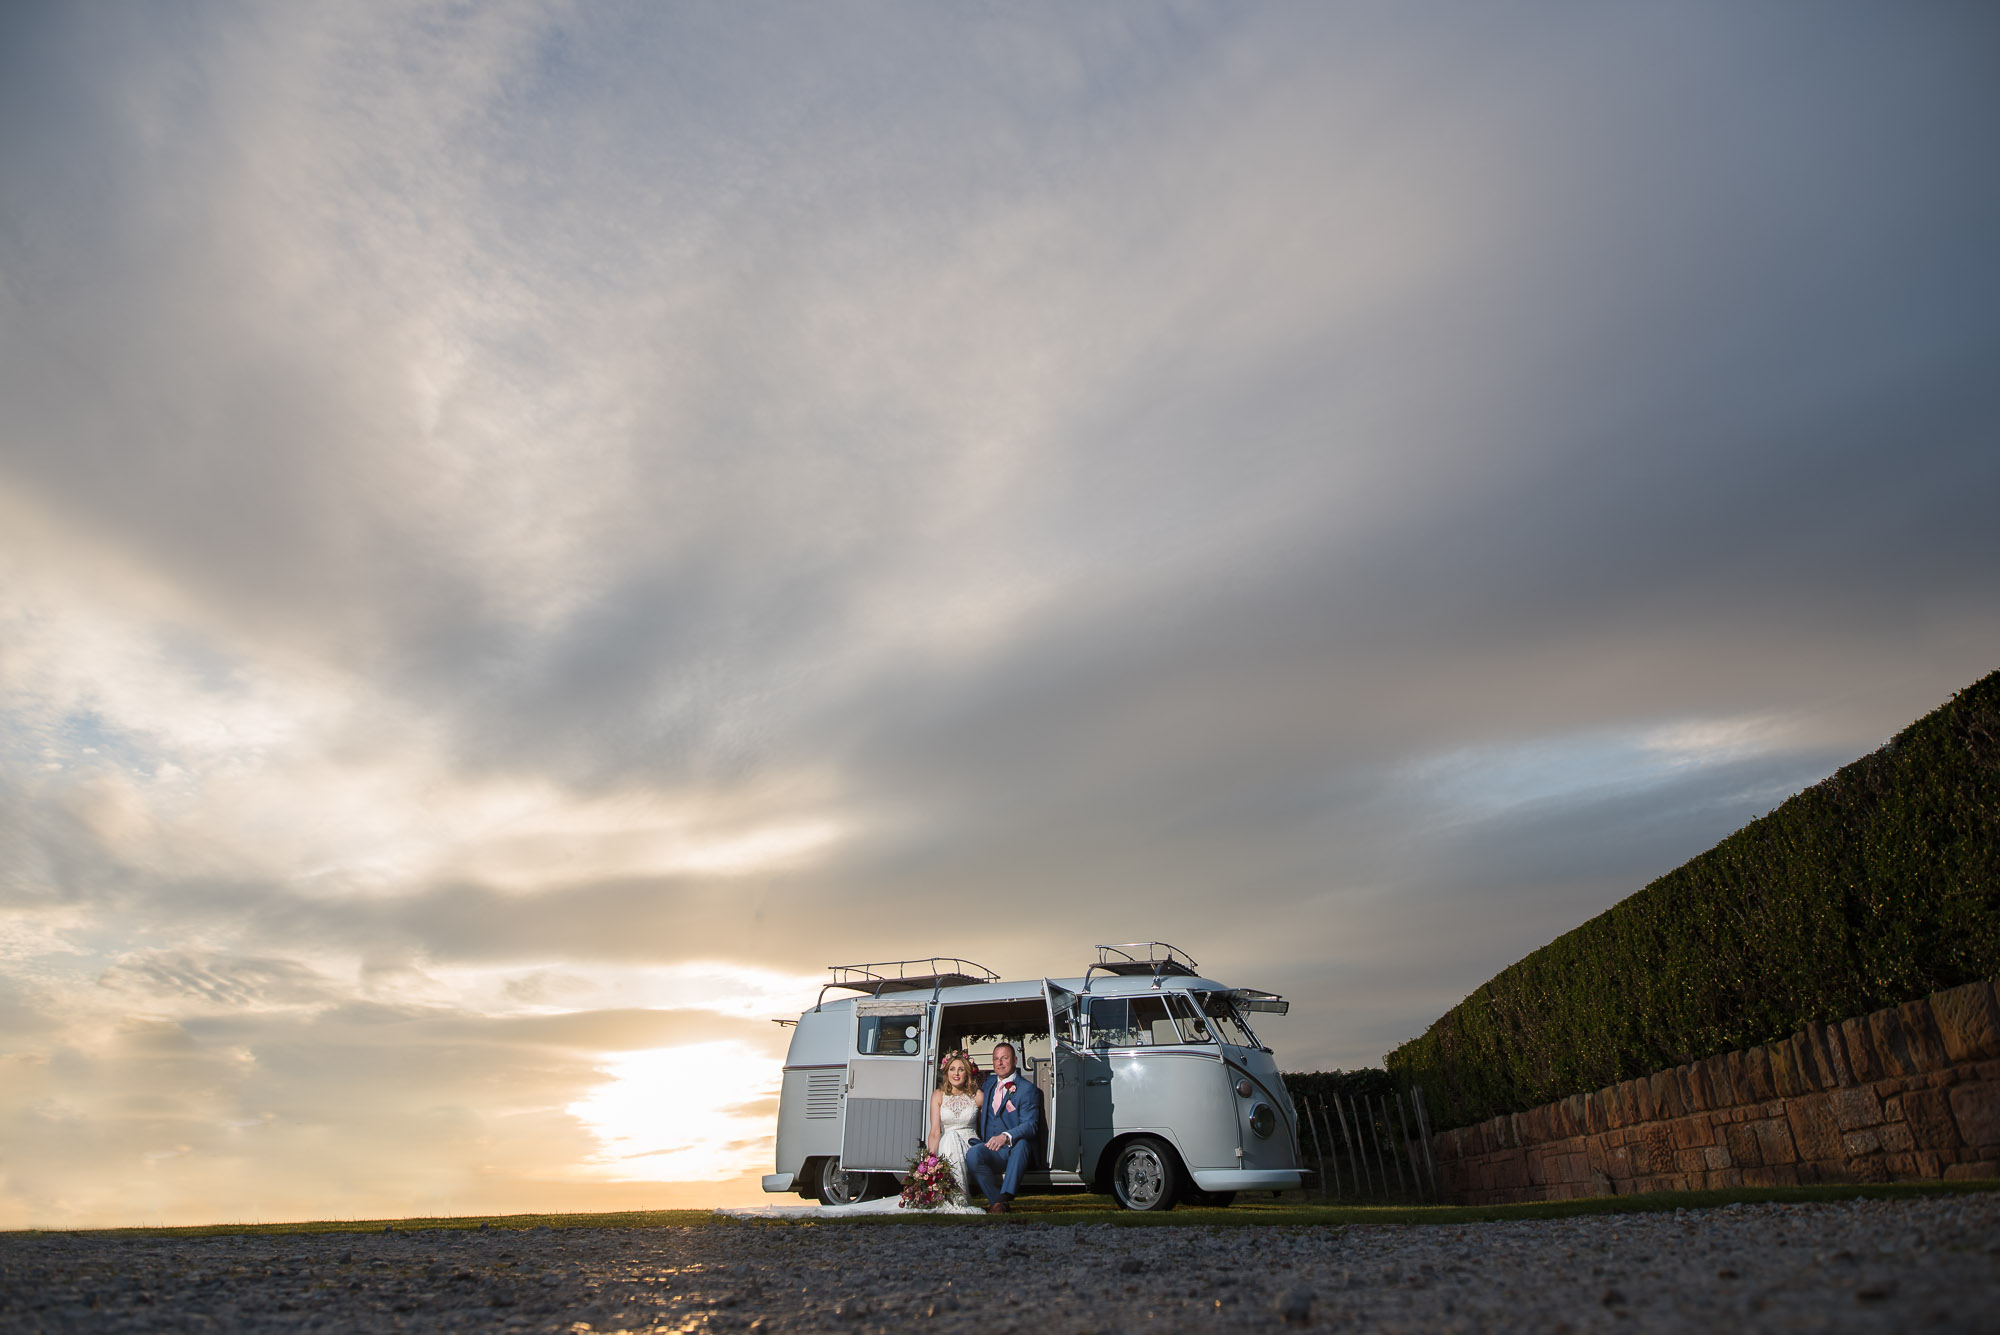 Camper Van at sunset